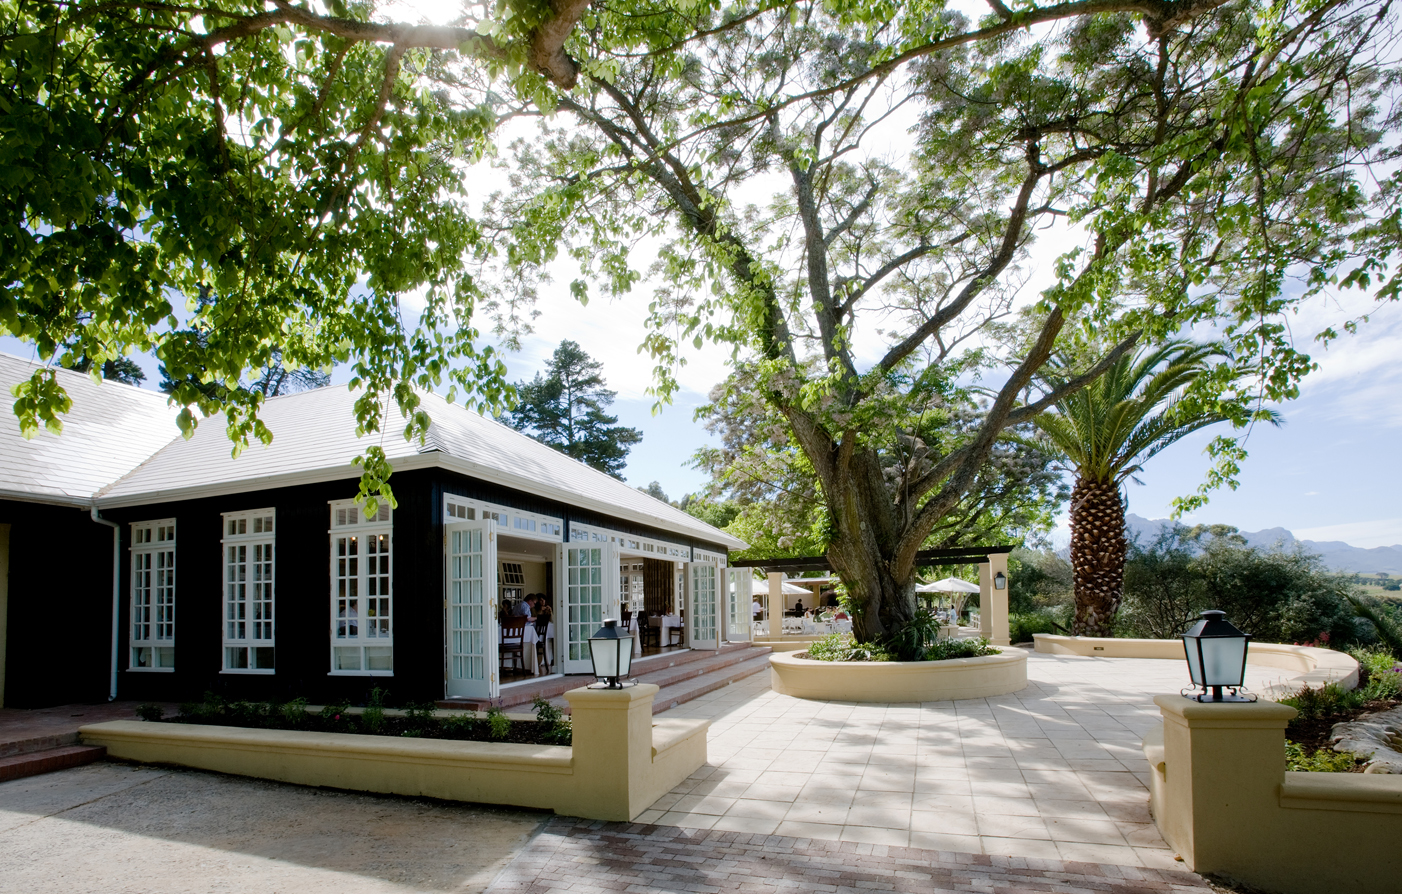 Luxury hotels in stellenbosch south africa the devon for Best boutique hotels devon